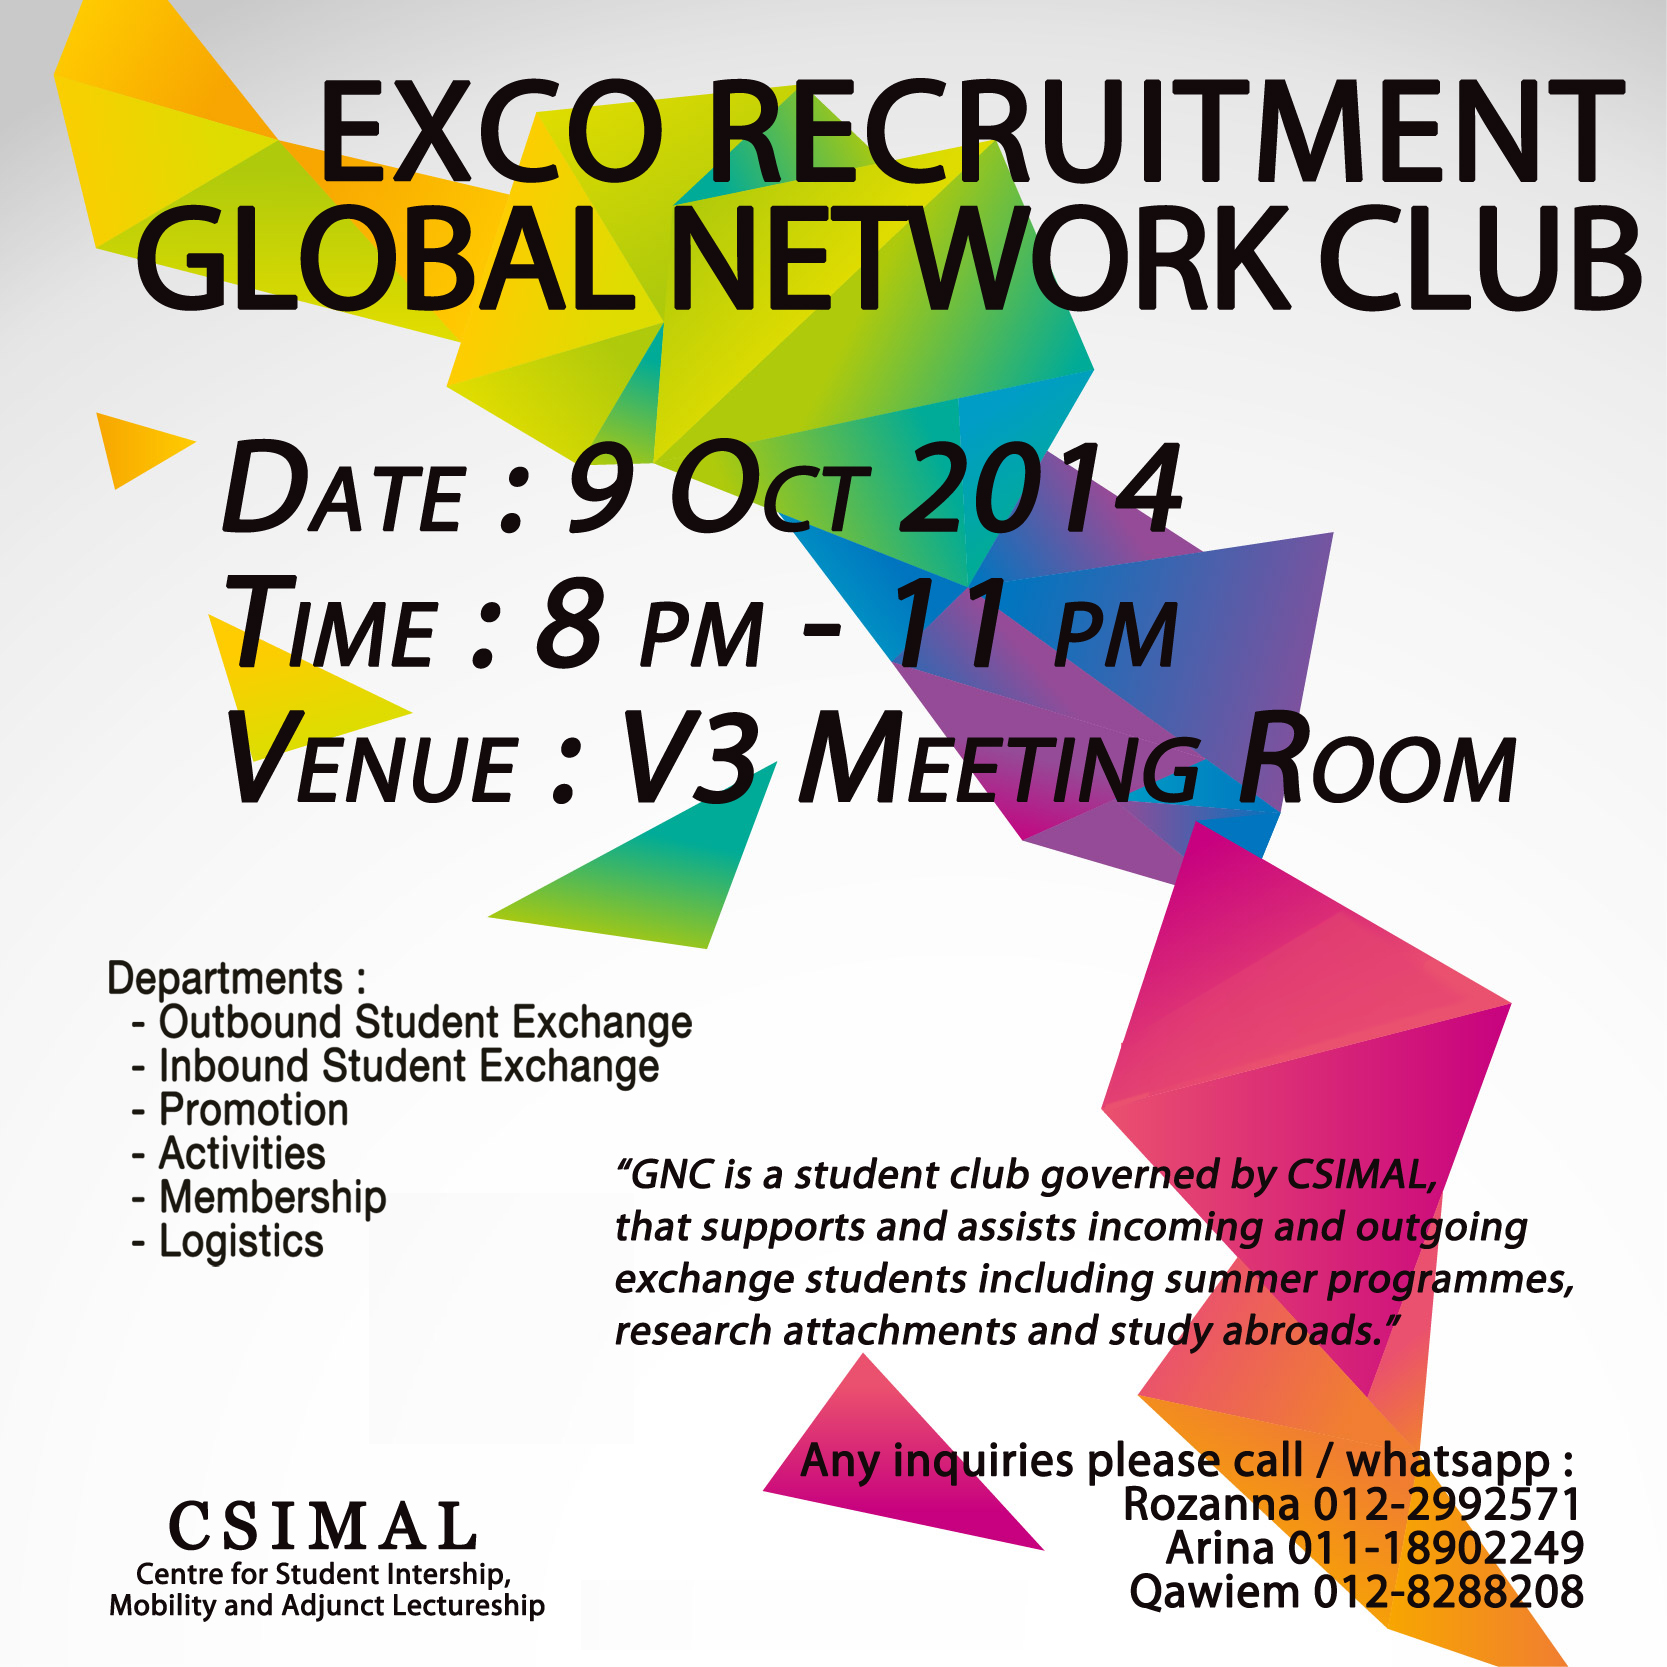 GNC%20recruitment%20poster%20%282%29.jpg